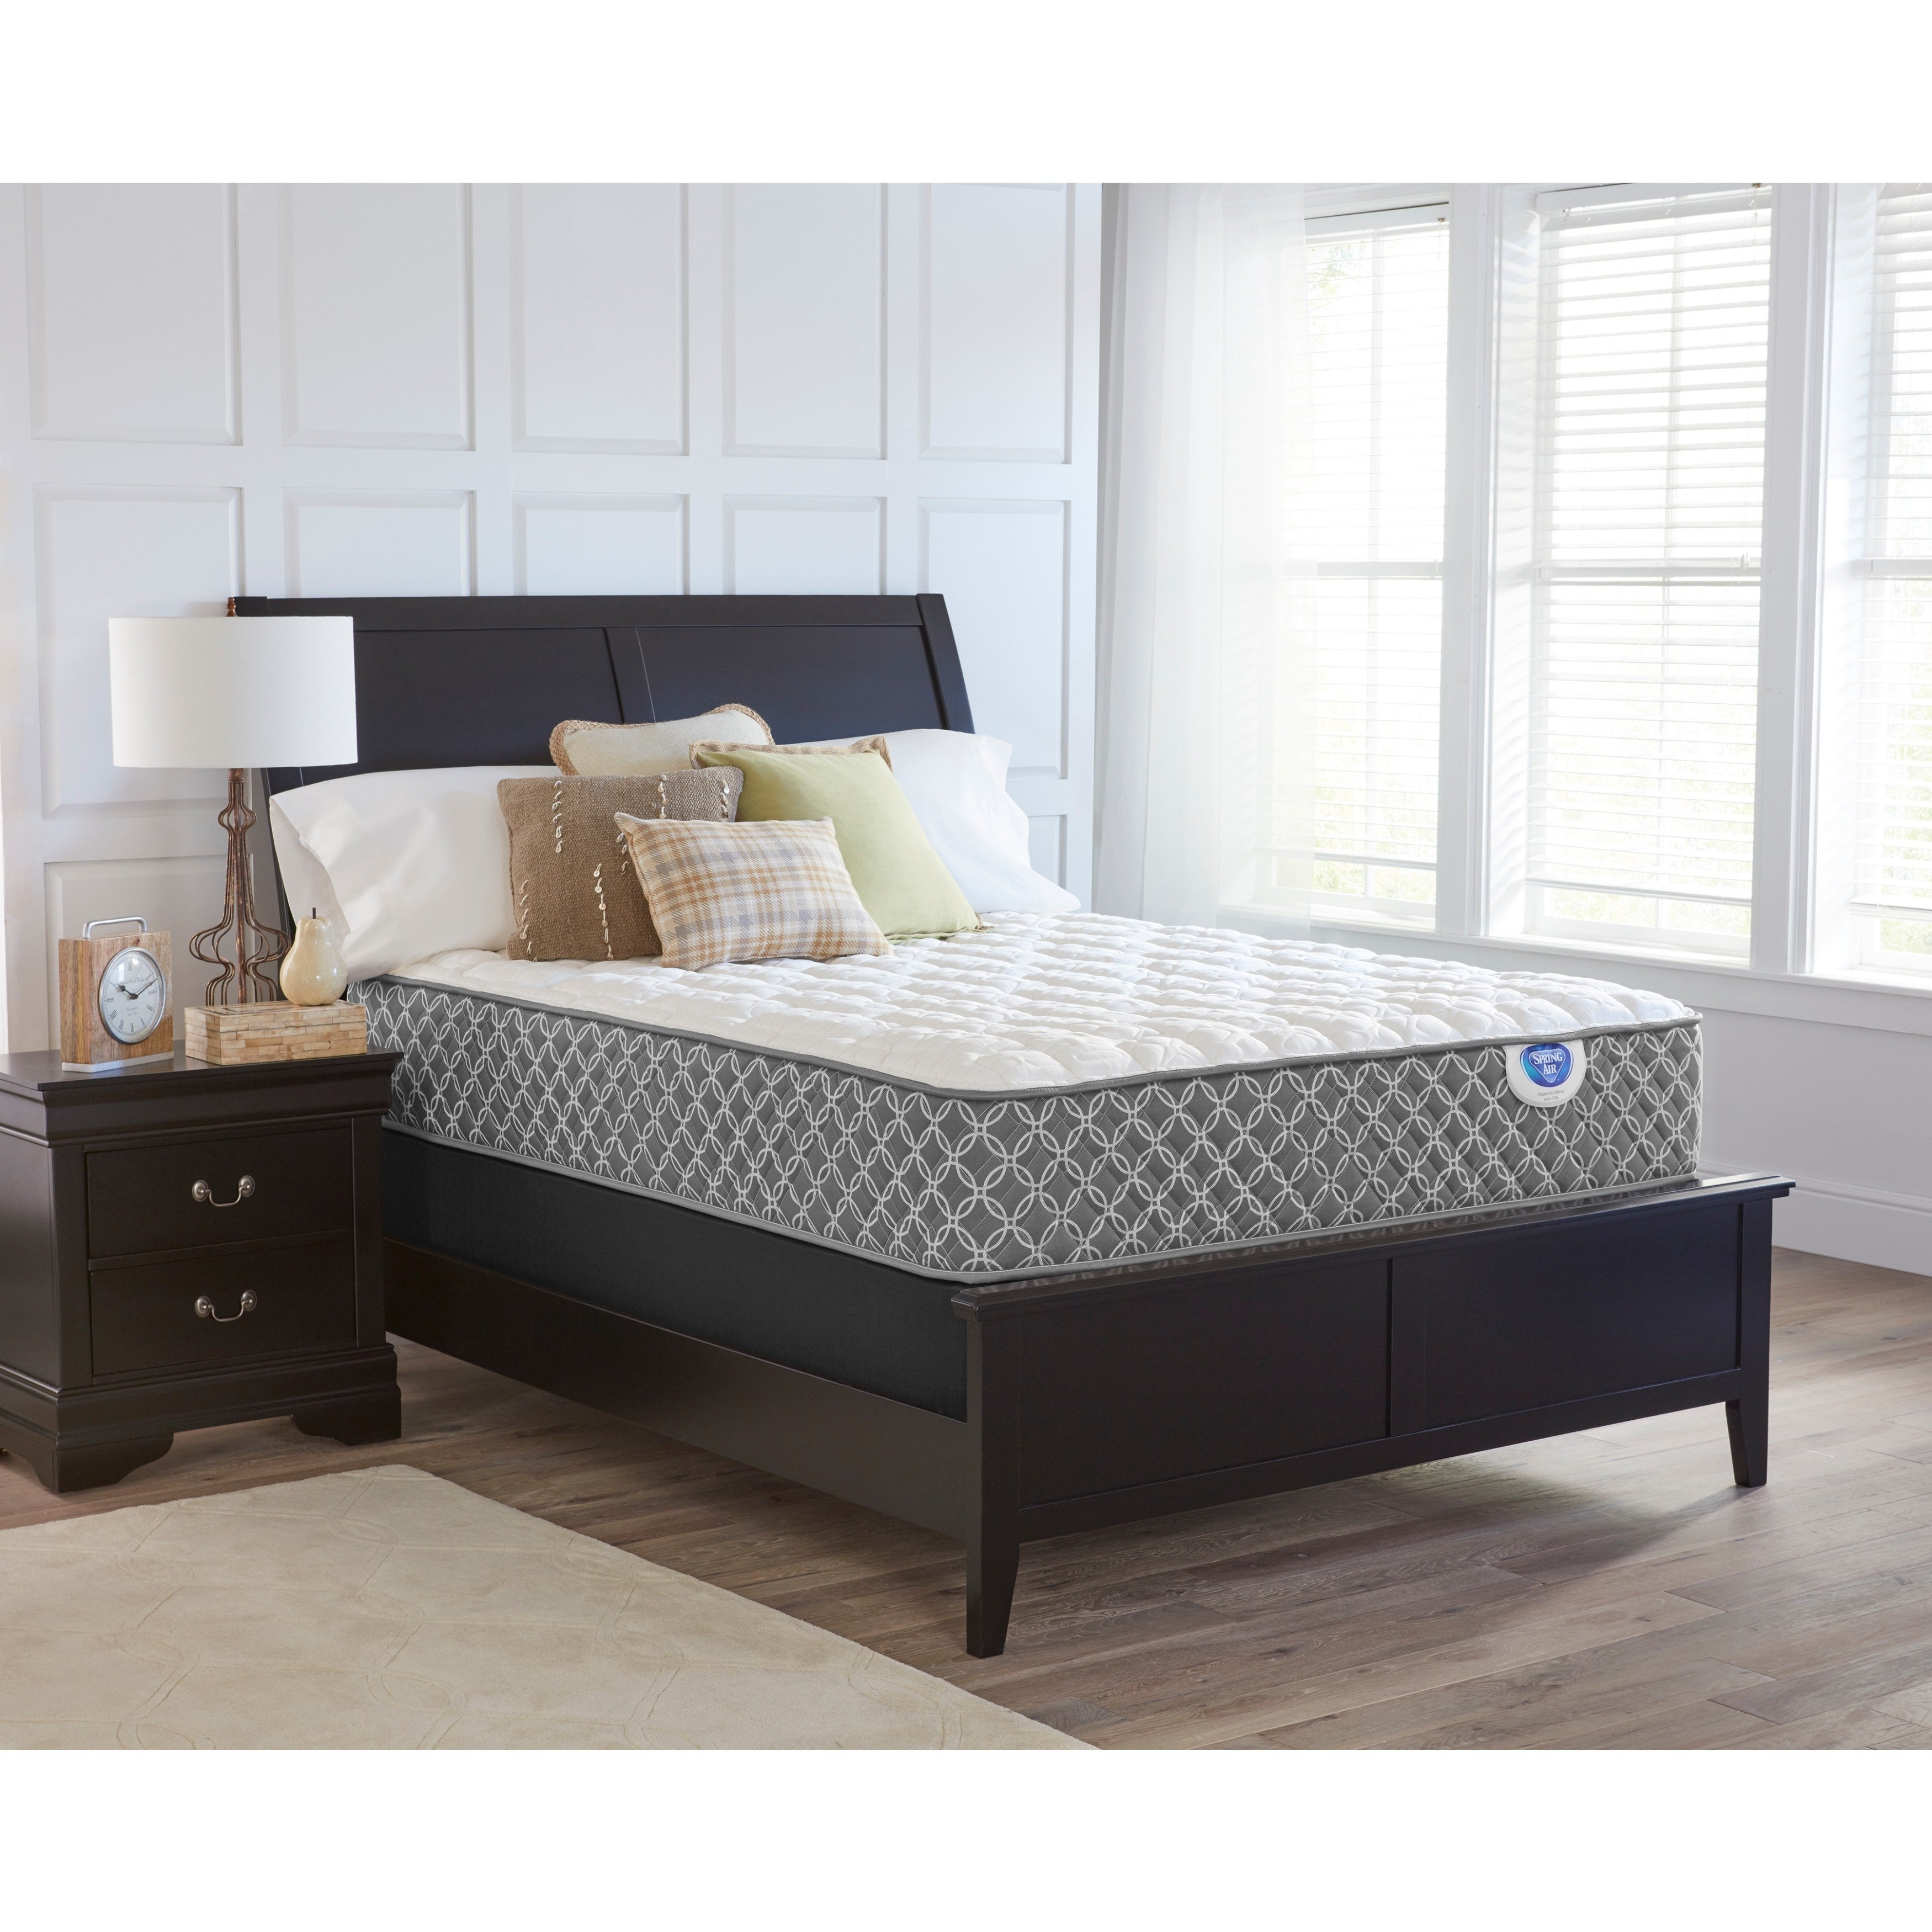 Shop Spring Air Bailey Firm Full size Mattress Set   Free Shipping